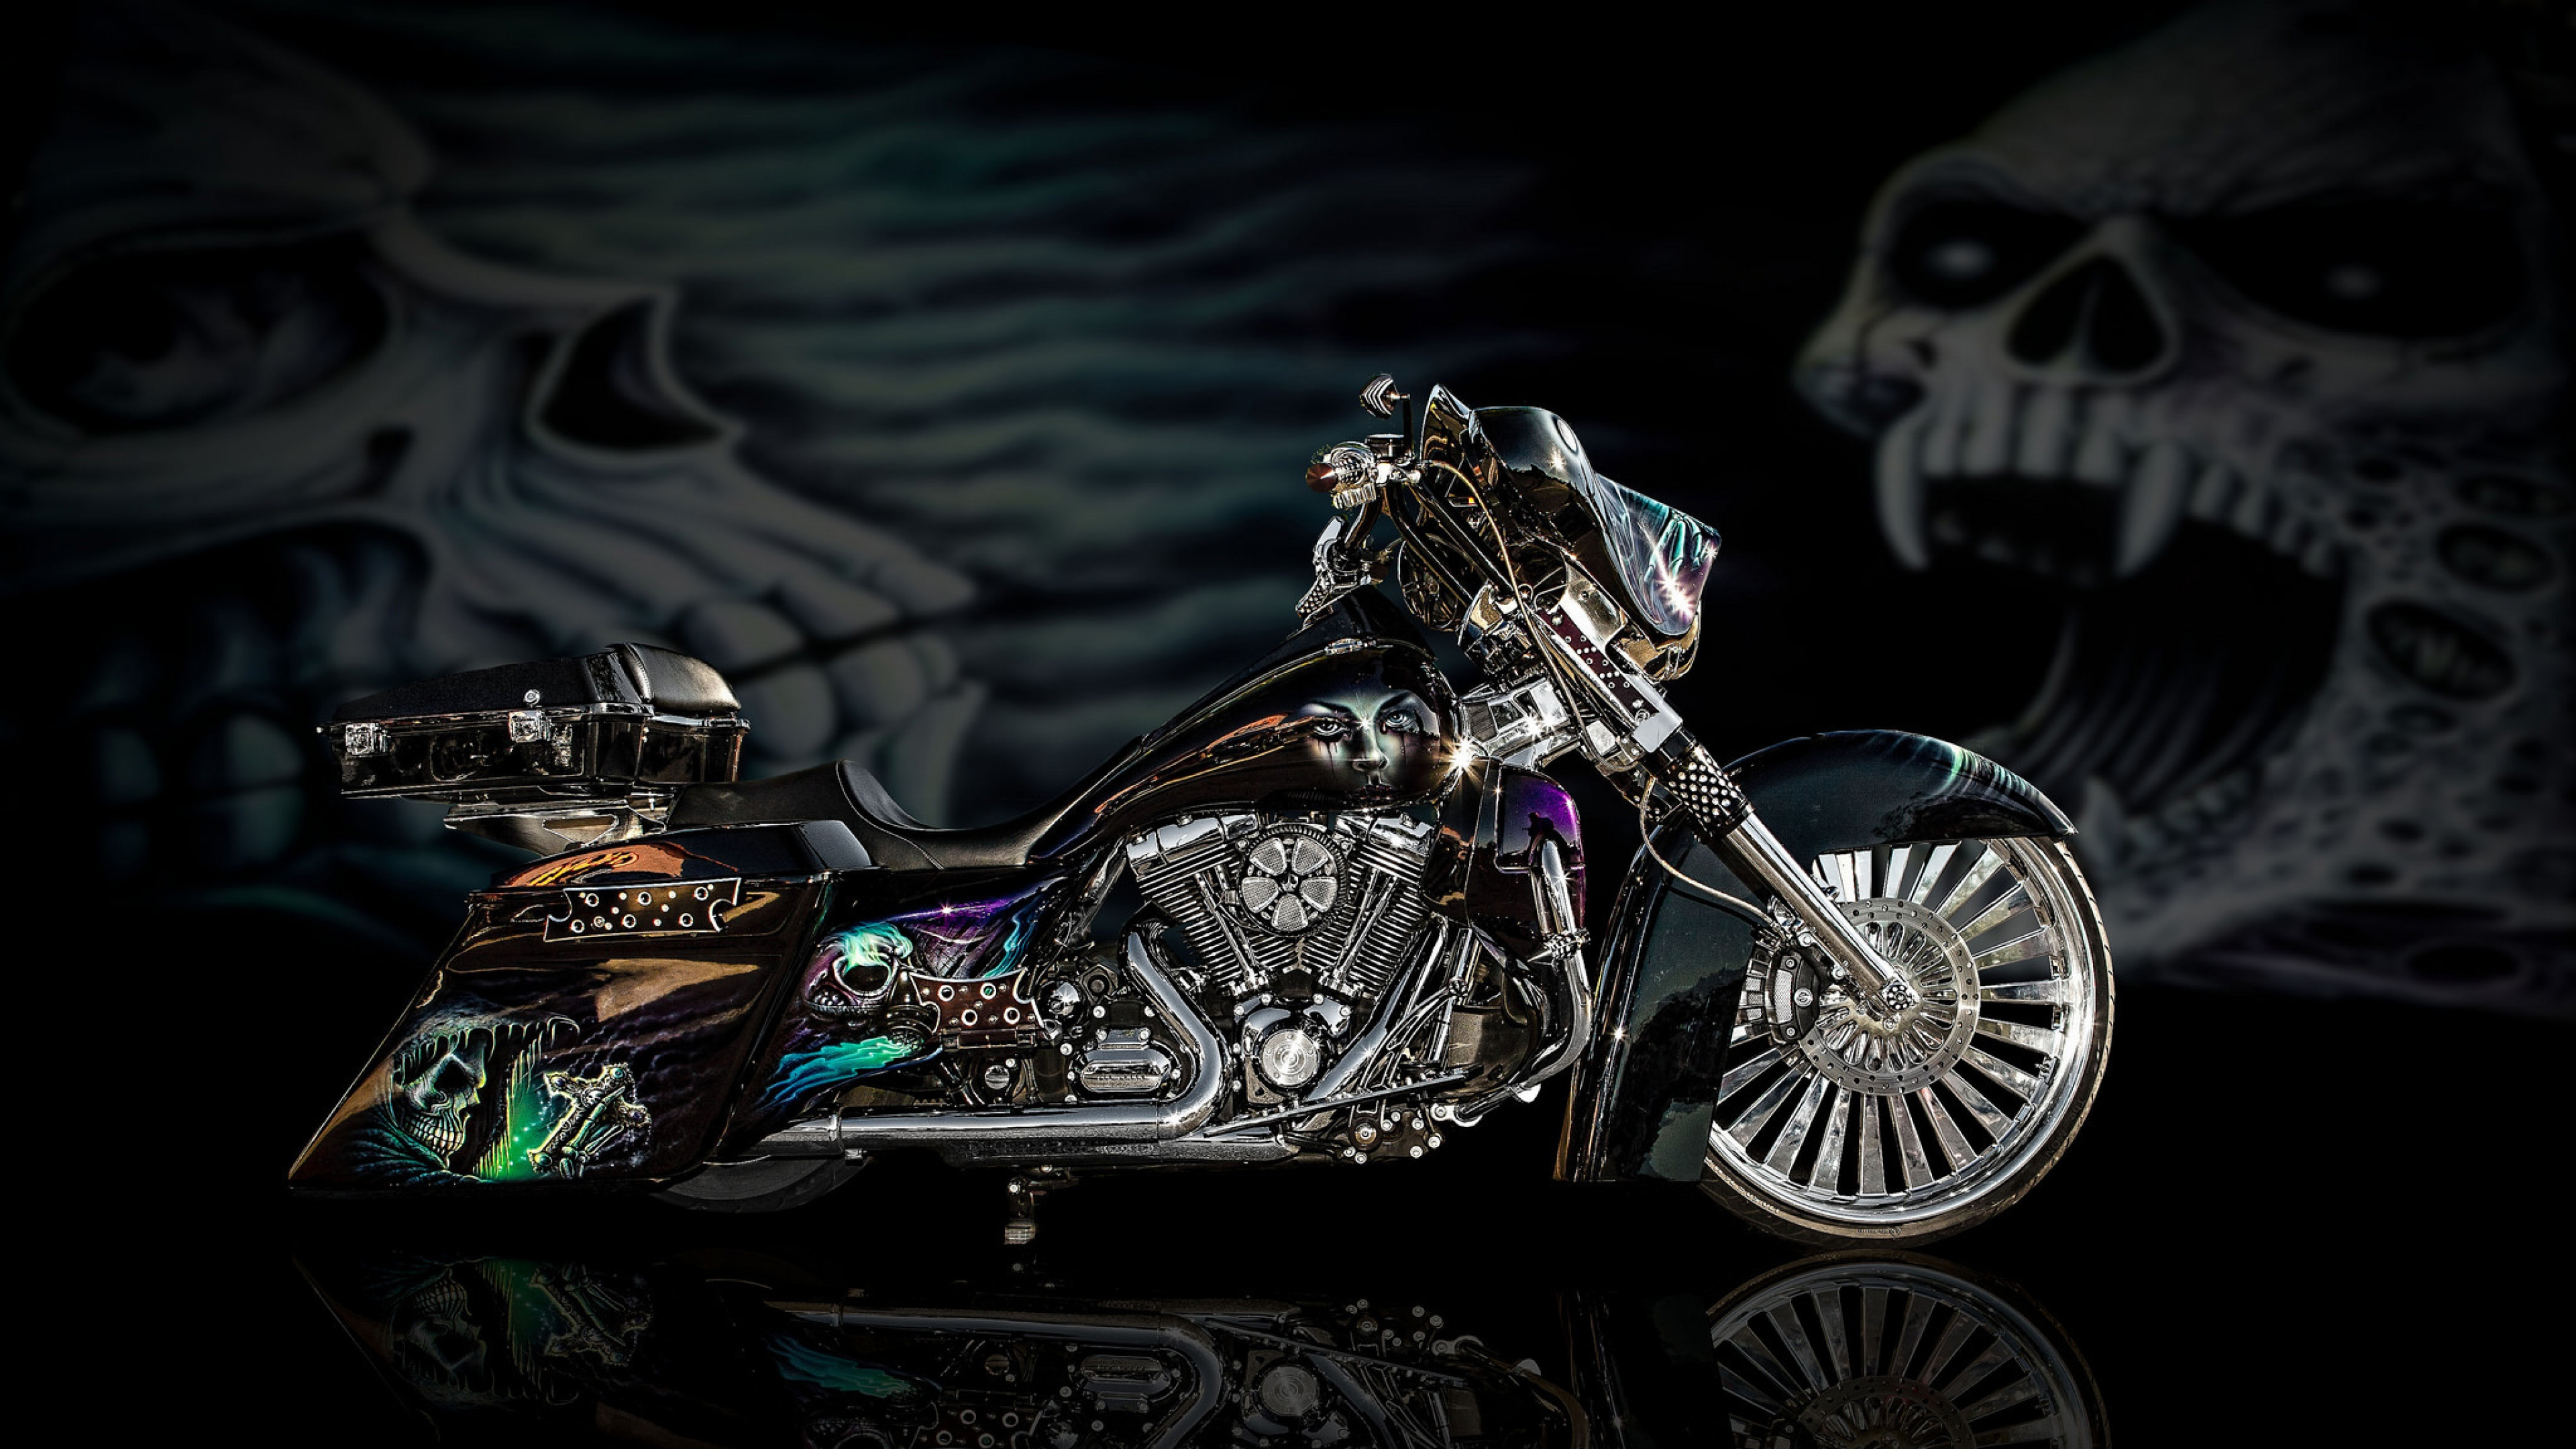 Ghost Design Chopper HD Bikes 4k Wallpapers Images Backgrounds